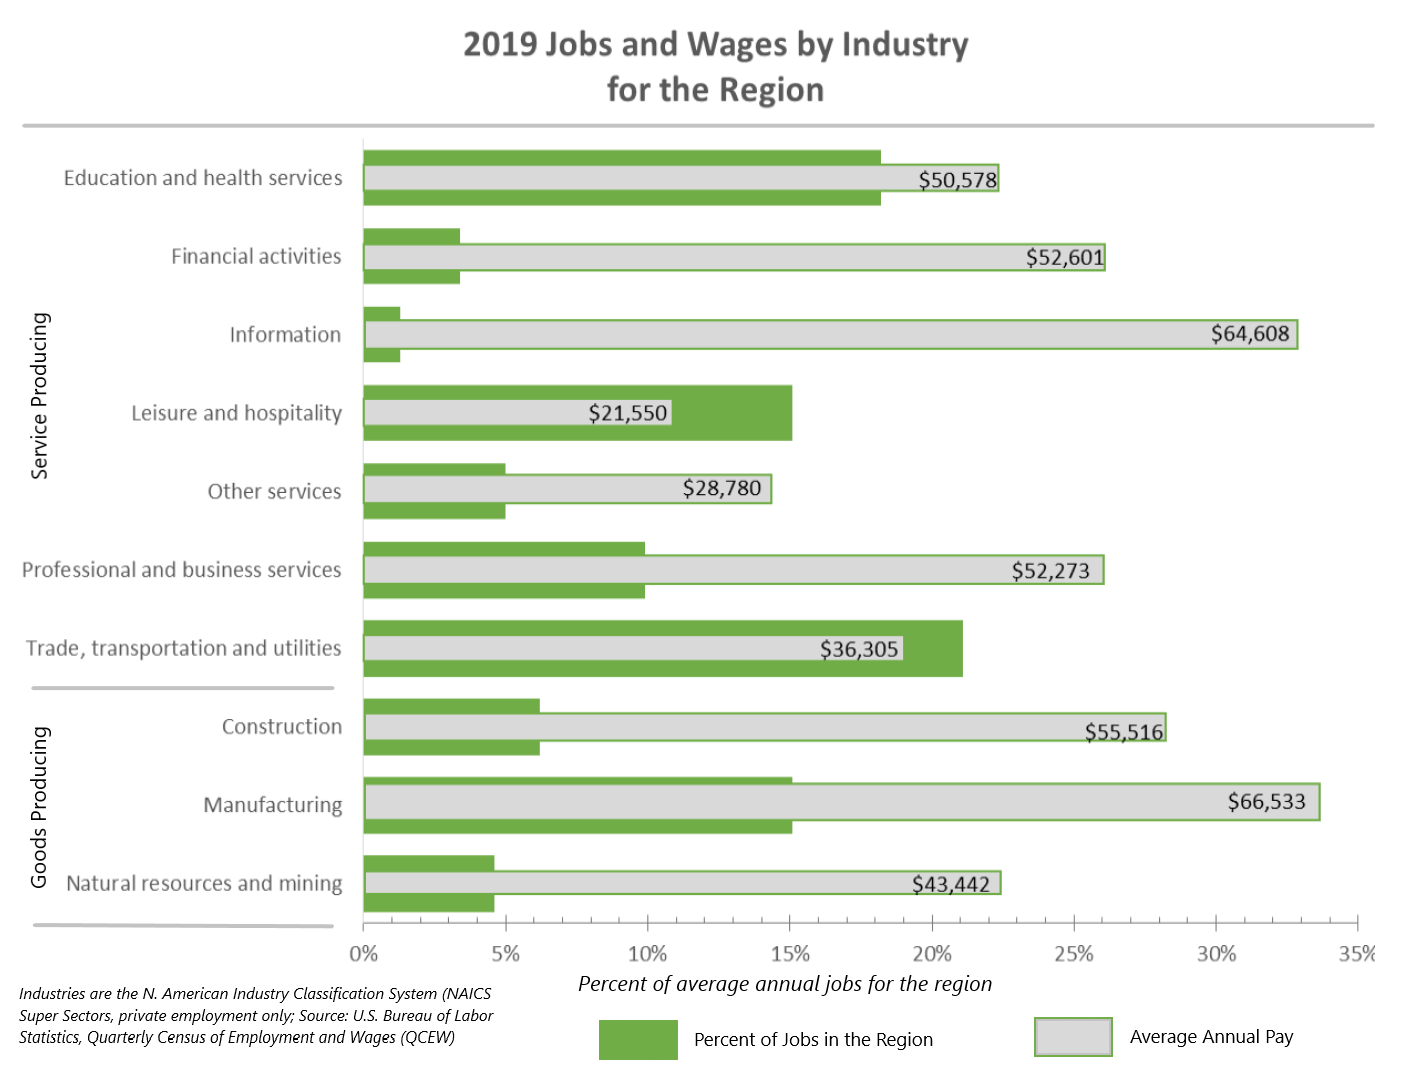 2019 Jobs and Wages by Industry for Region